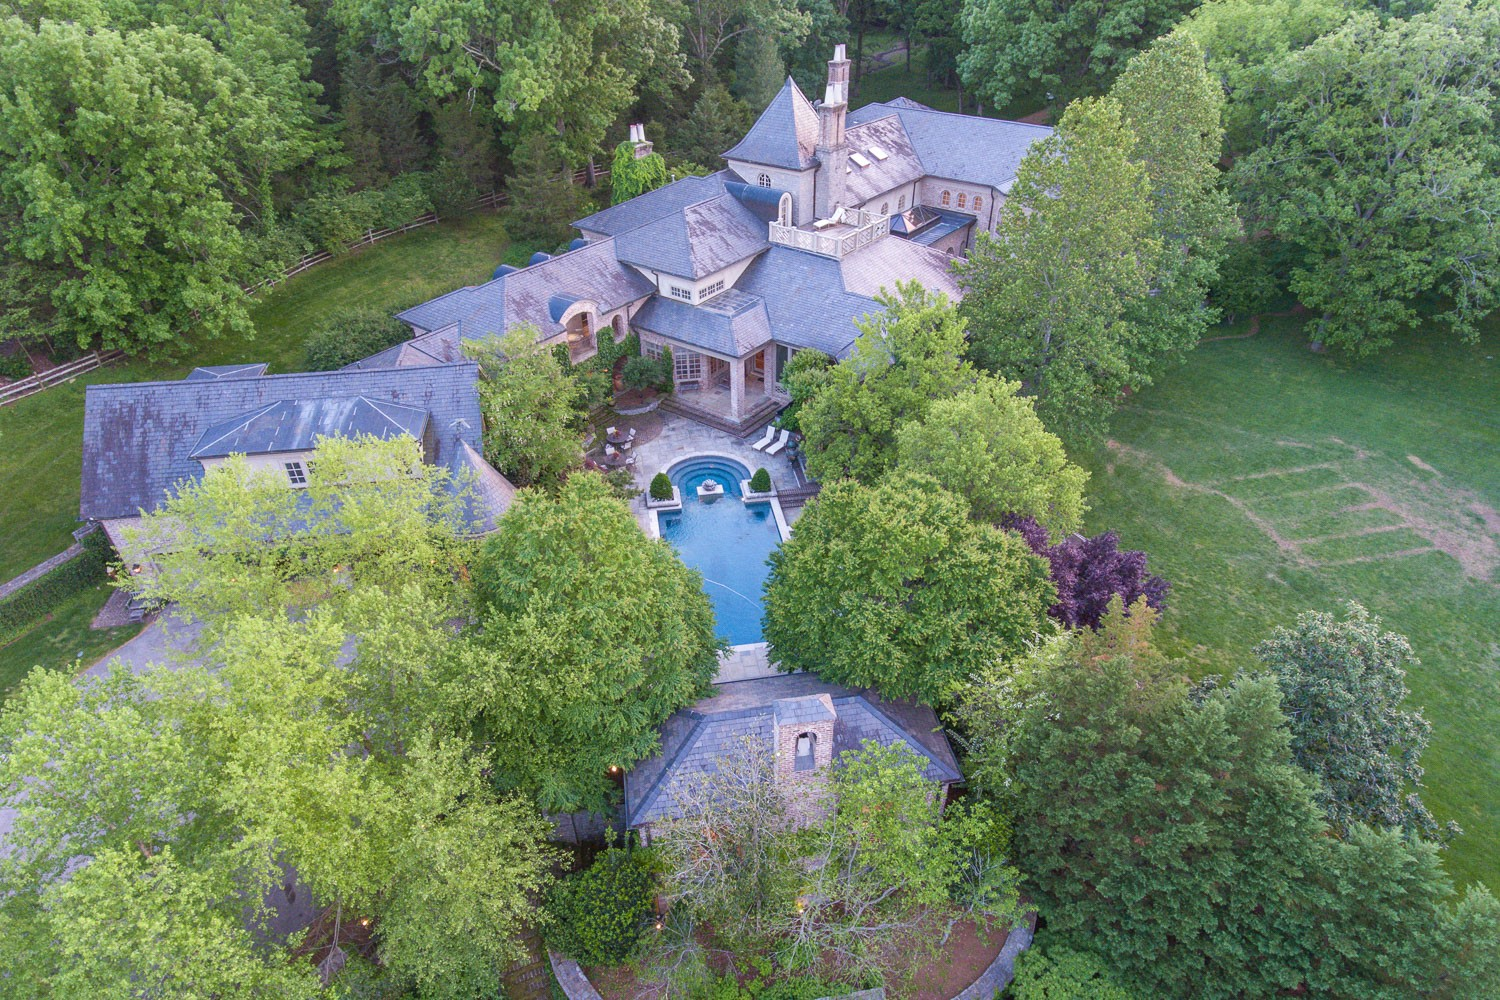 Gated 6 acre private property in the Bel-Air of TN a front porch & columns welcome you into this magnificent Villa. Huge Great room/skylit conservatory/vaulted ceilings/gourmet kitchen & family-room/make this the perfect place to house your loved ones. Master w/ his/her ba & closets. 6+ bdrs en-suite/media room/3 den areas & 6 fprs/3k bottle wine cellar/billiard room/bar & room for music studio. Pool/sun porch/horse barn/pond. Also, for lease $100,000 per month - call Agent pageroadestate.com